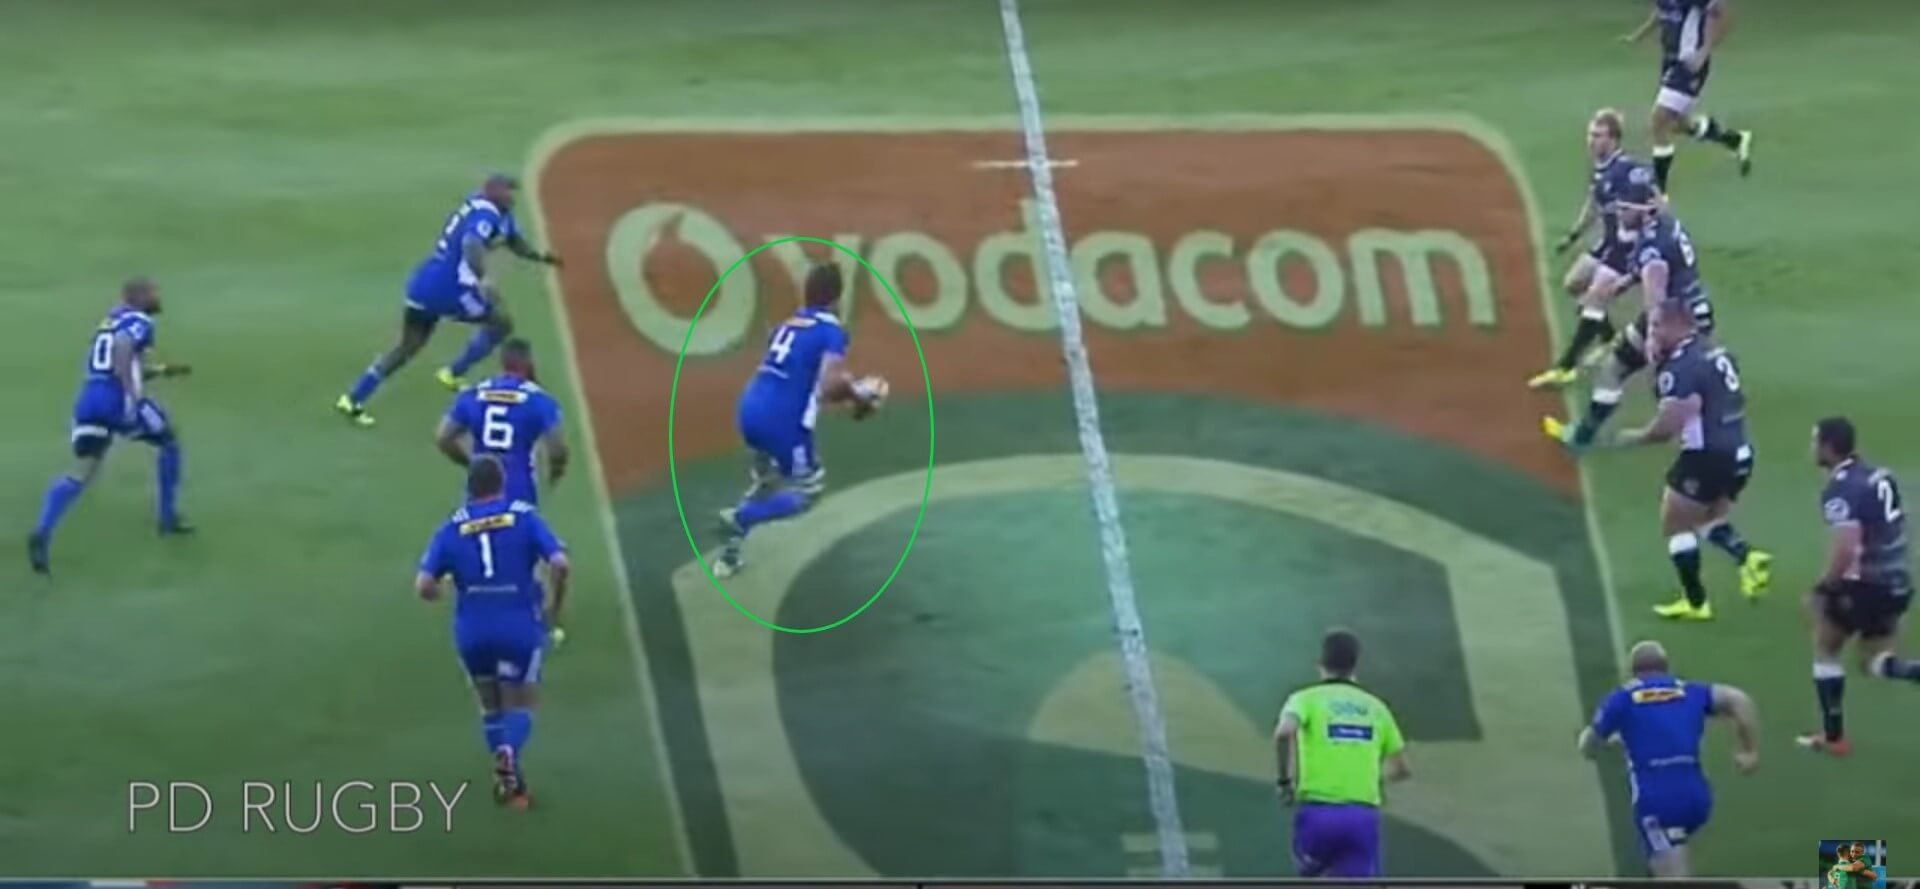 South Africa v British and Irish Lions (First Test): Key Springboks players - tactical analysis tactics